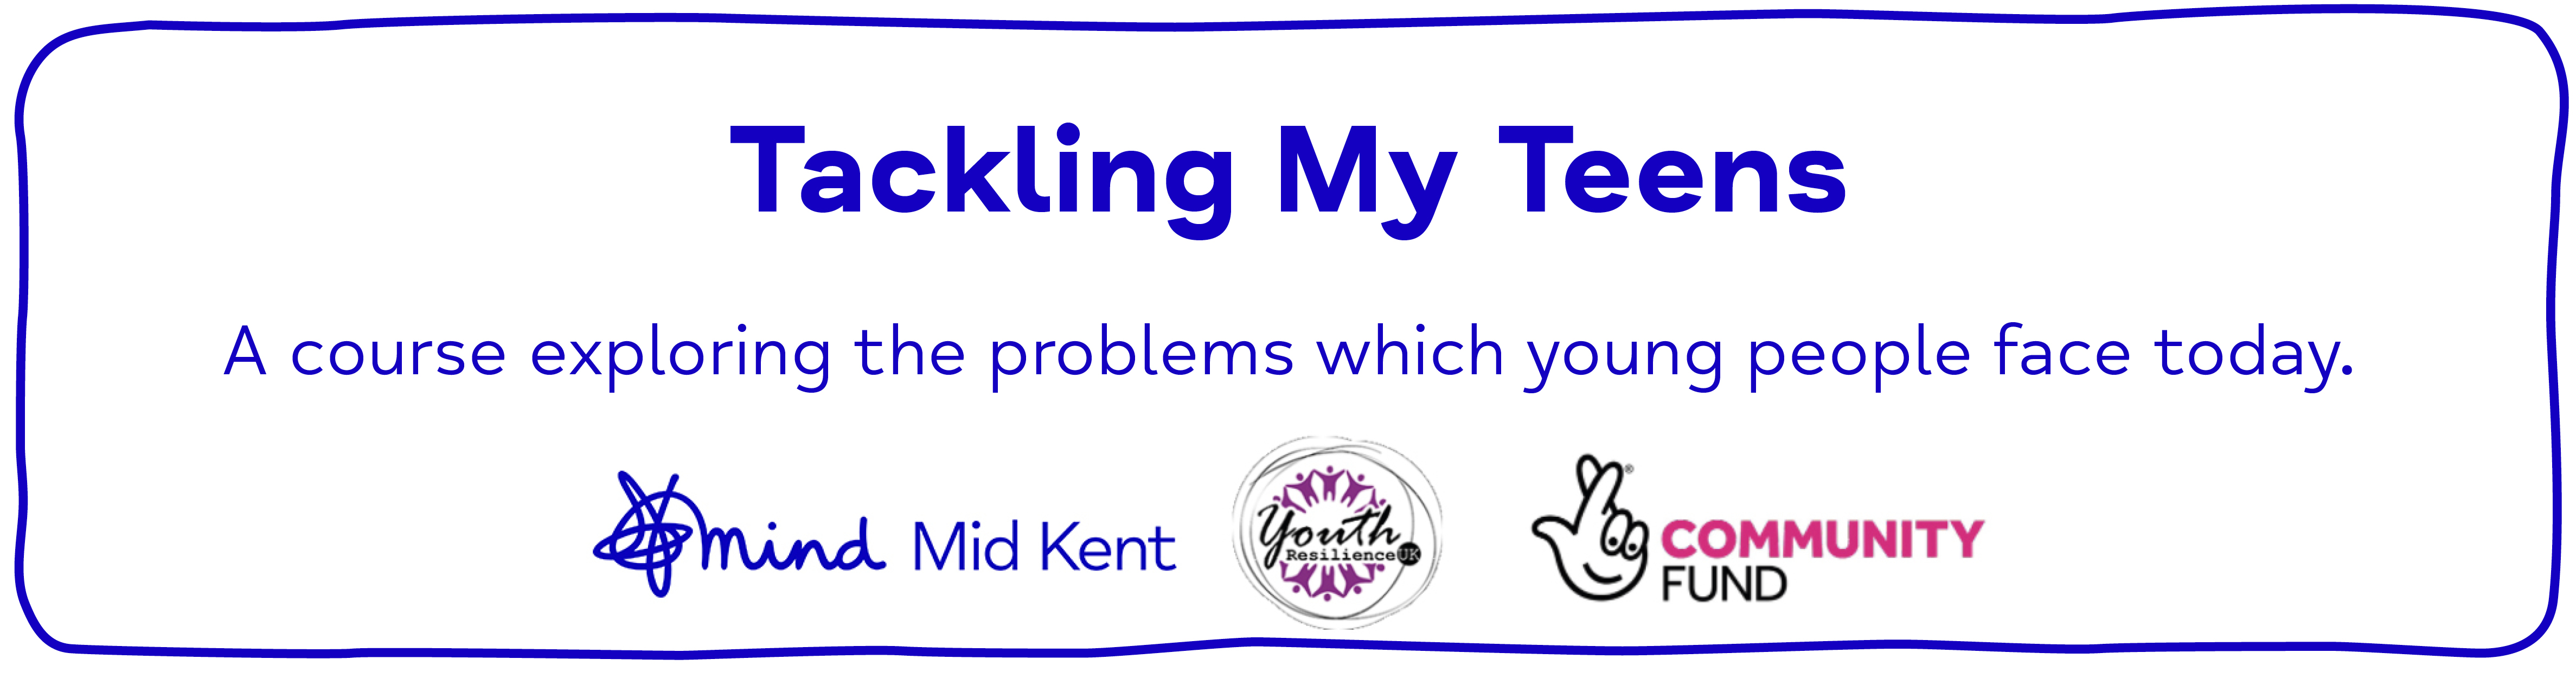 Tackling My Teens A course exploring the problems which young people face today.